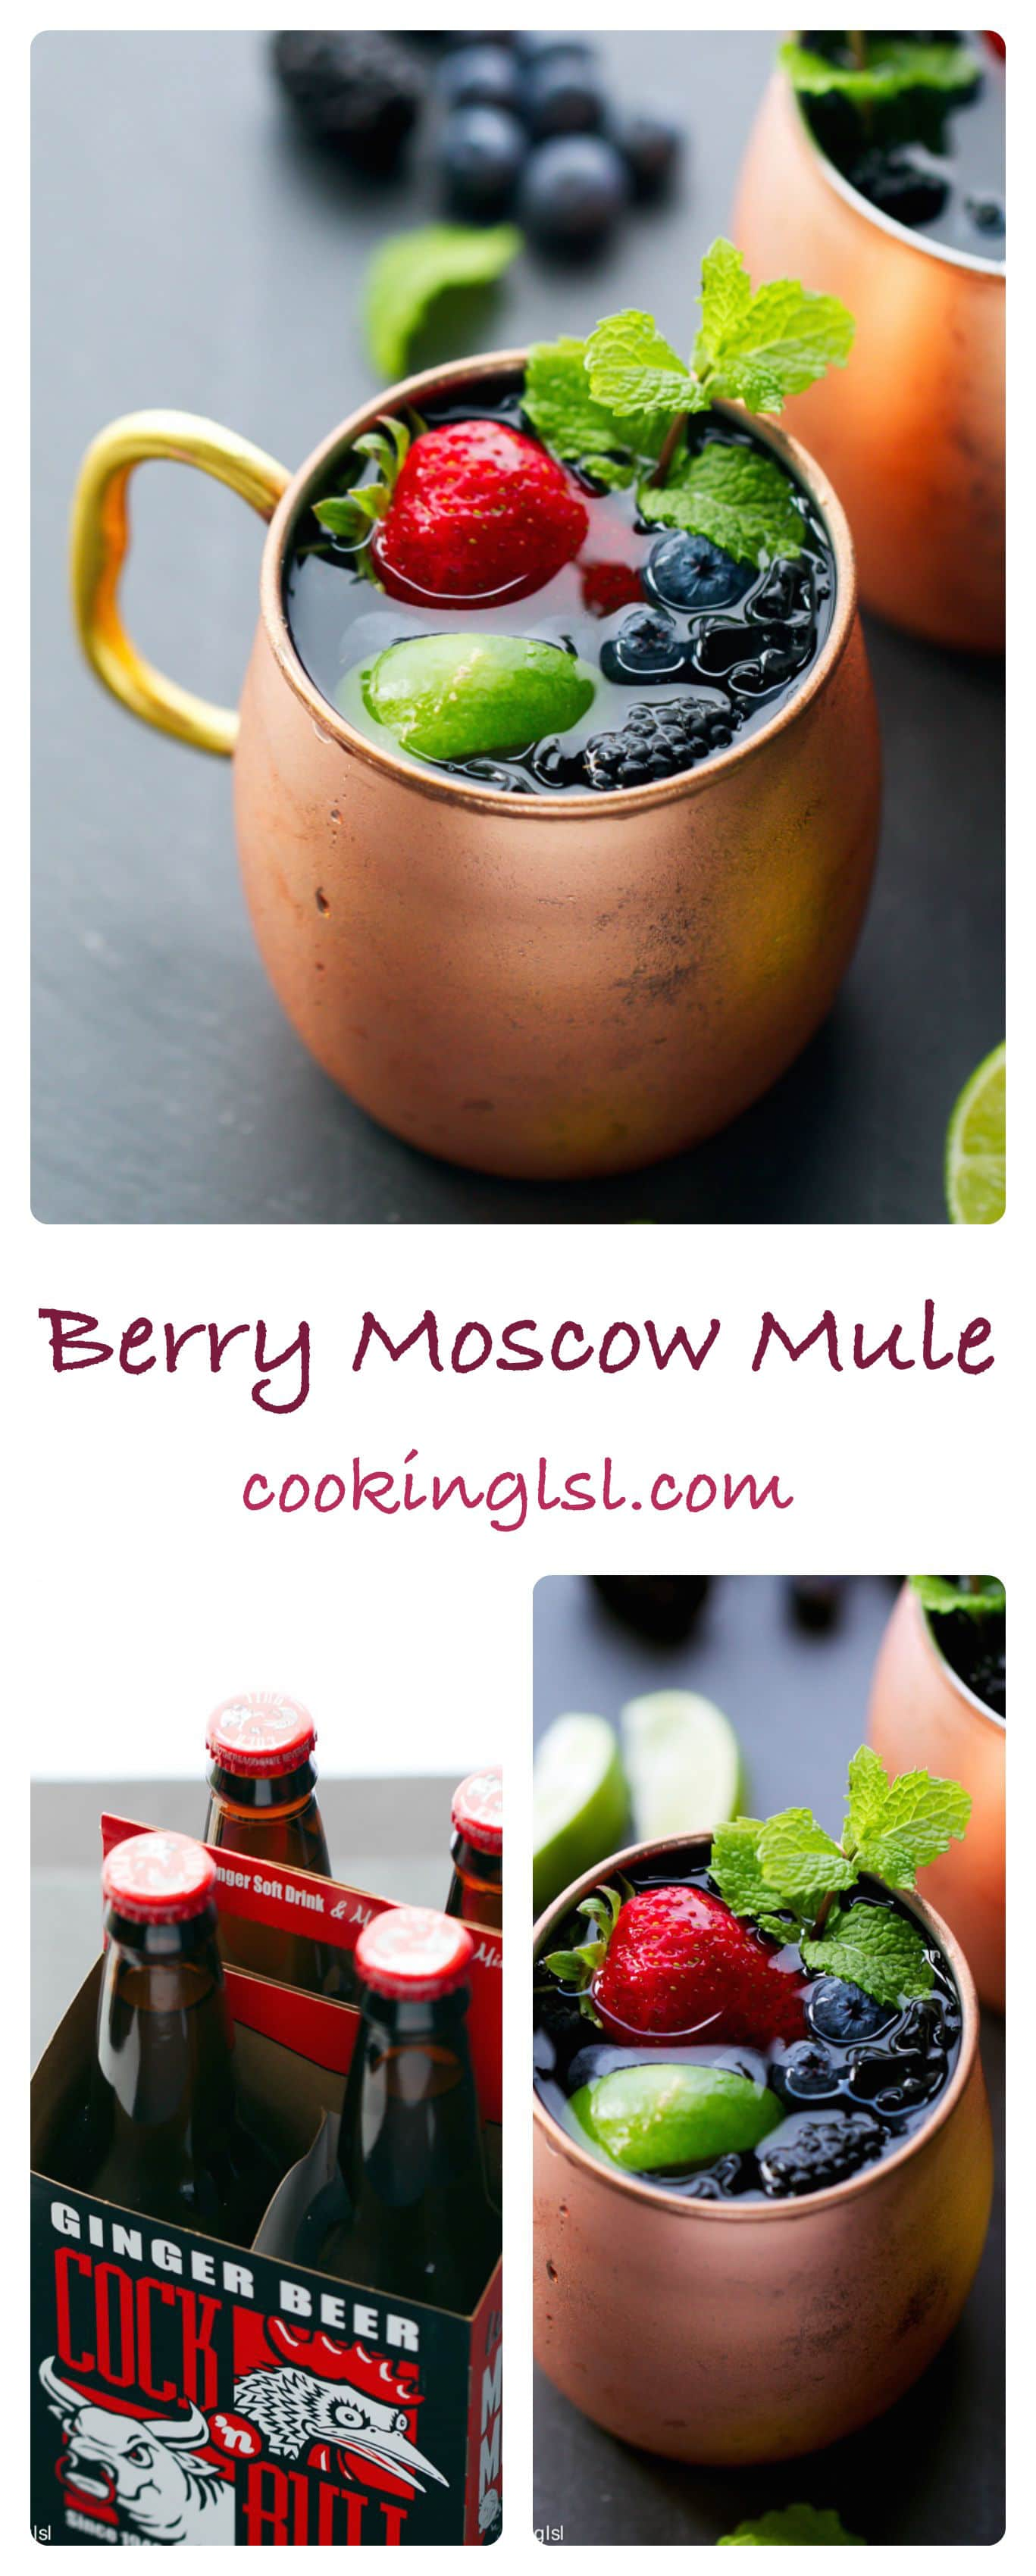 berry-Moscow-mule-cocktaill